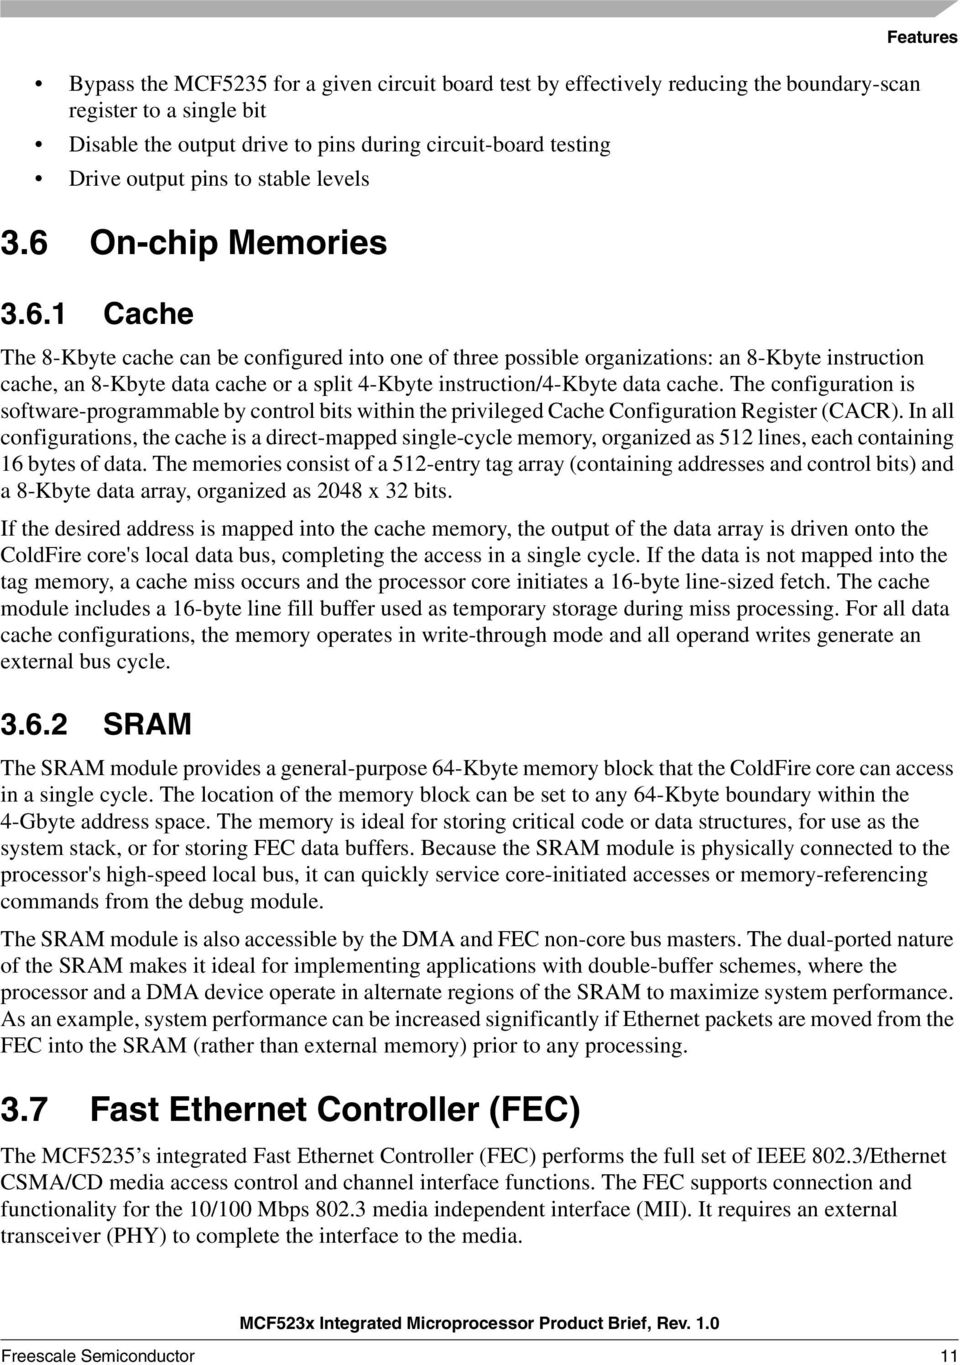 On-chip Memories 3.6.